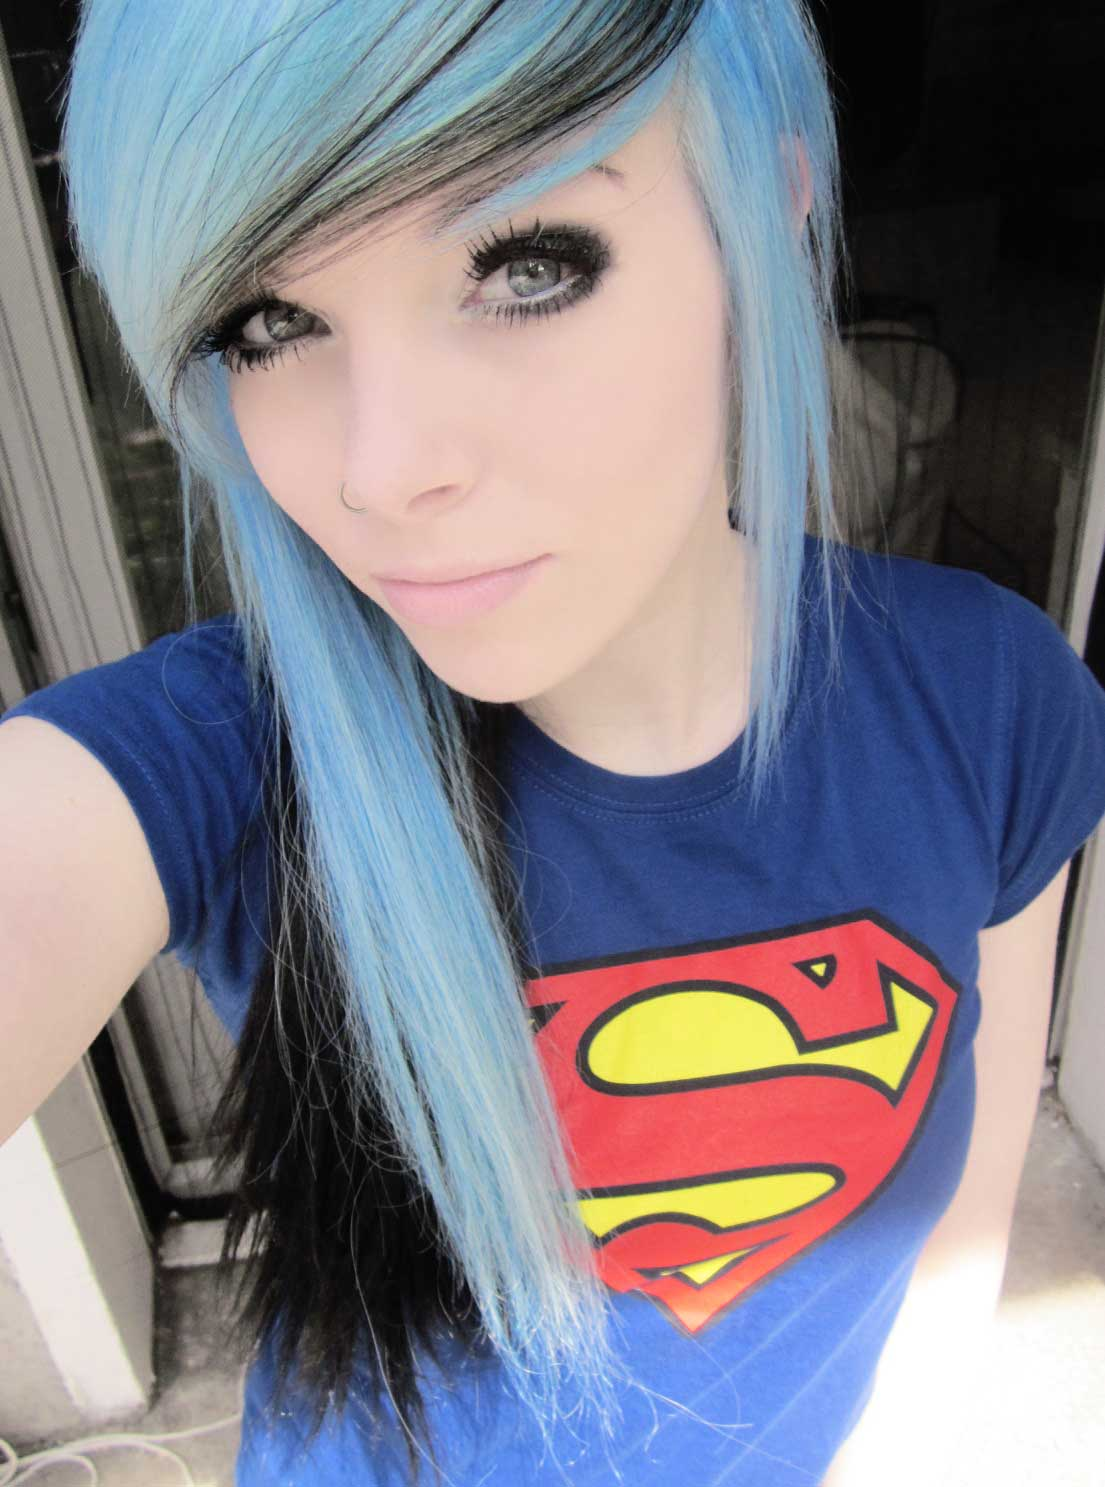 emo girls Images | Icons, Wallpapers and Photos on Fanpop